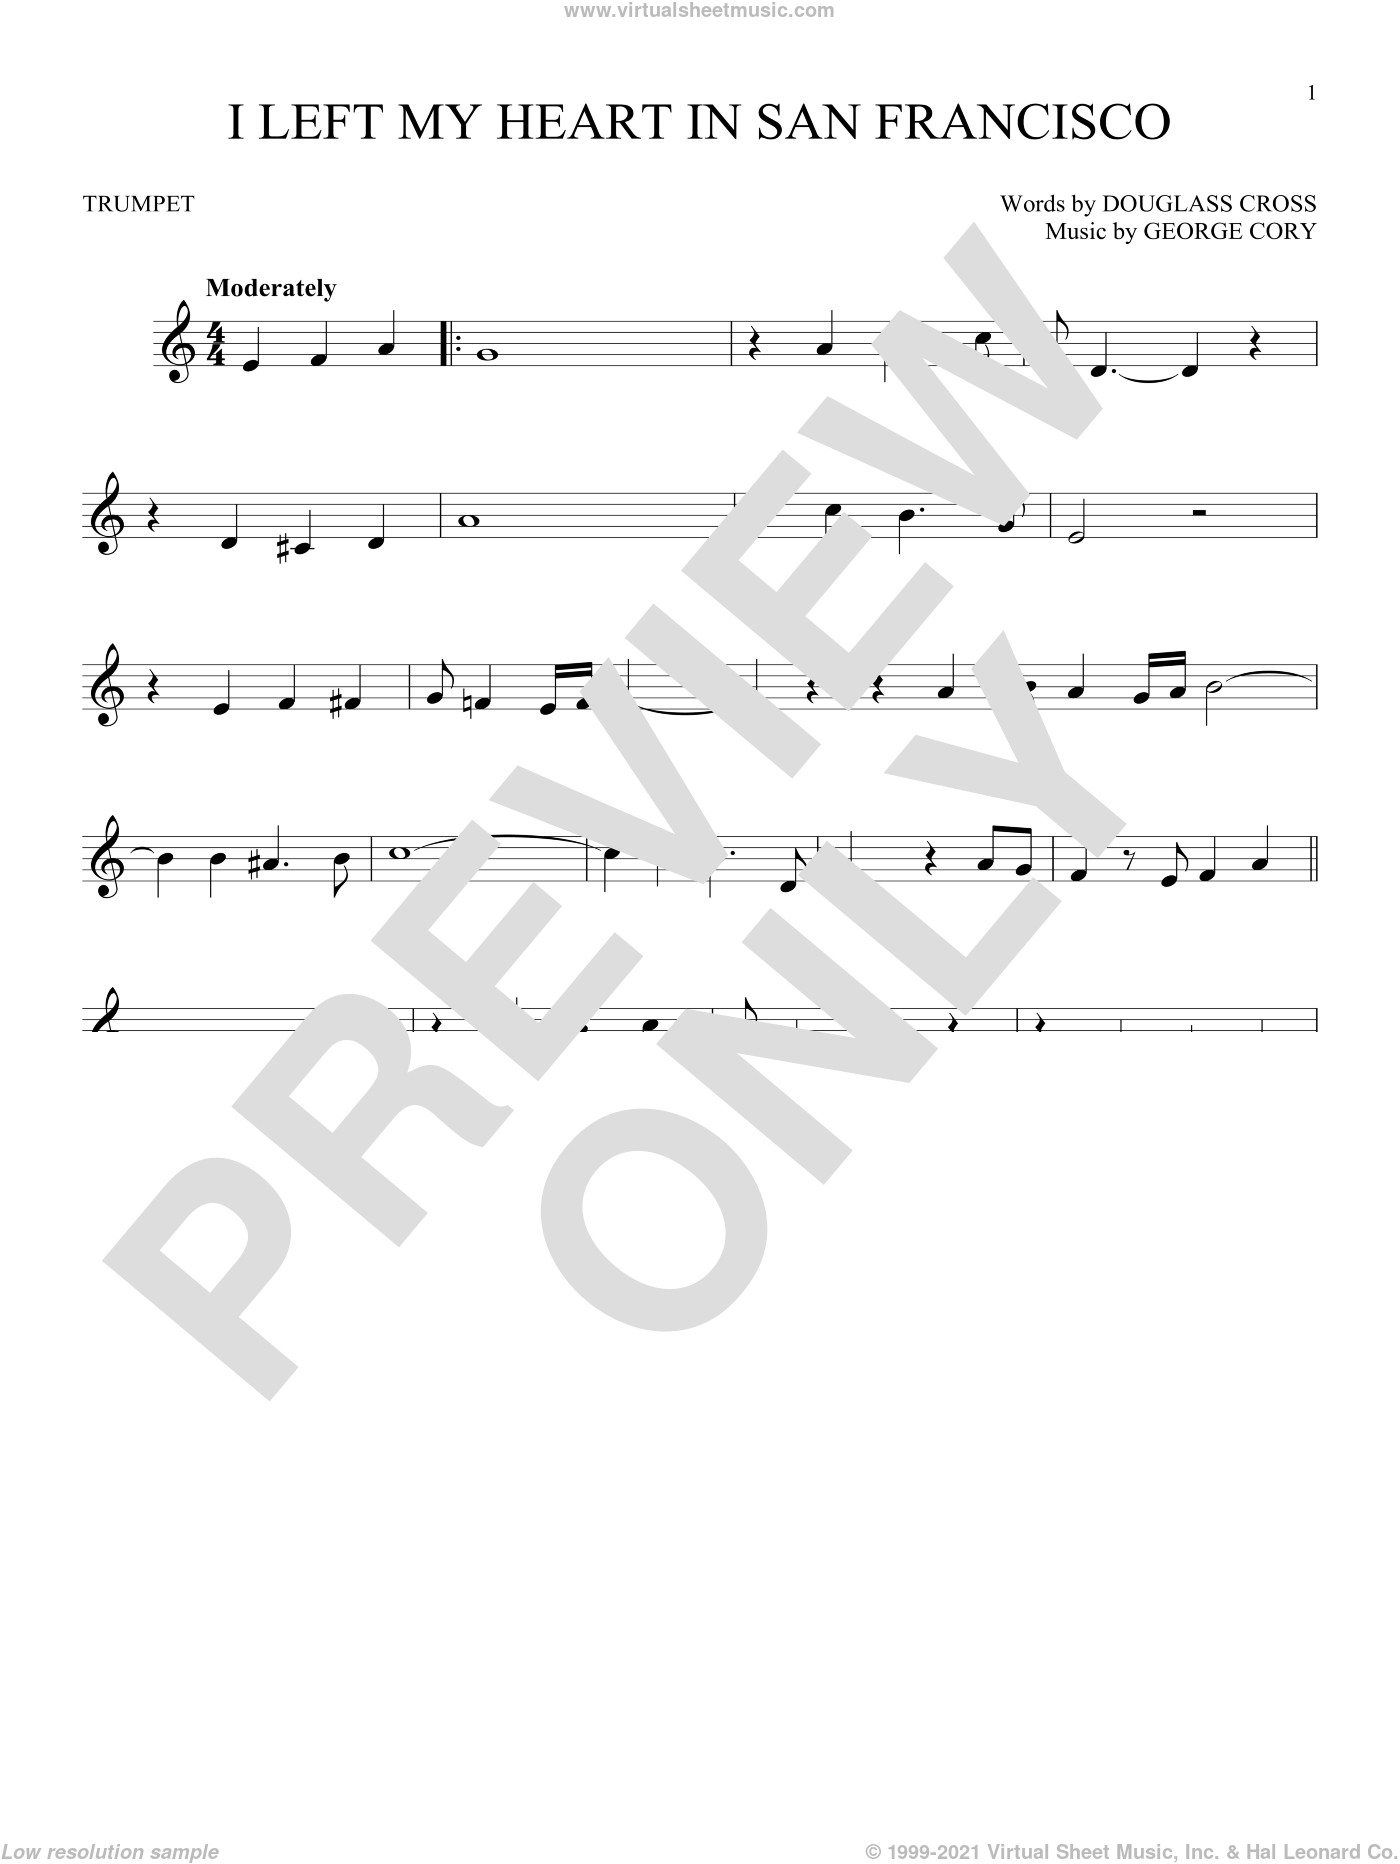 I Left My Heart In San Francisco sheet music for trumpet solo by George Cory, Tony Bennett and Douglass Cross. Score Image Preview.